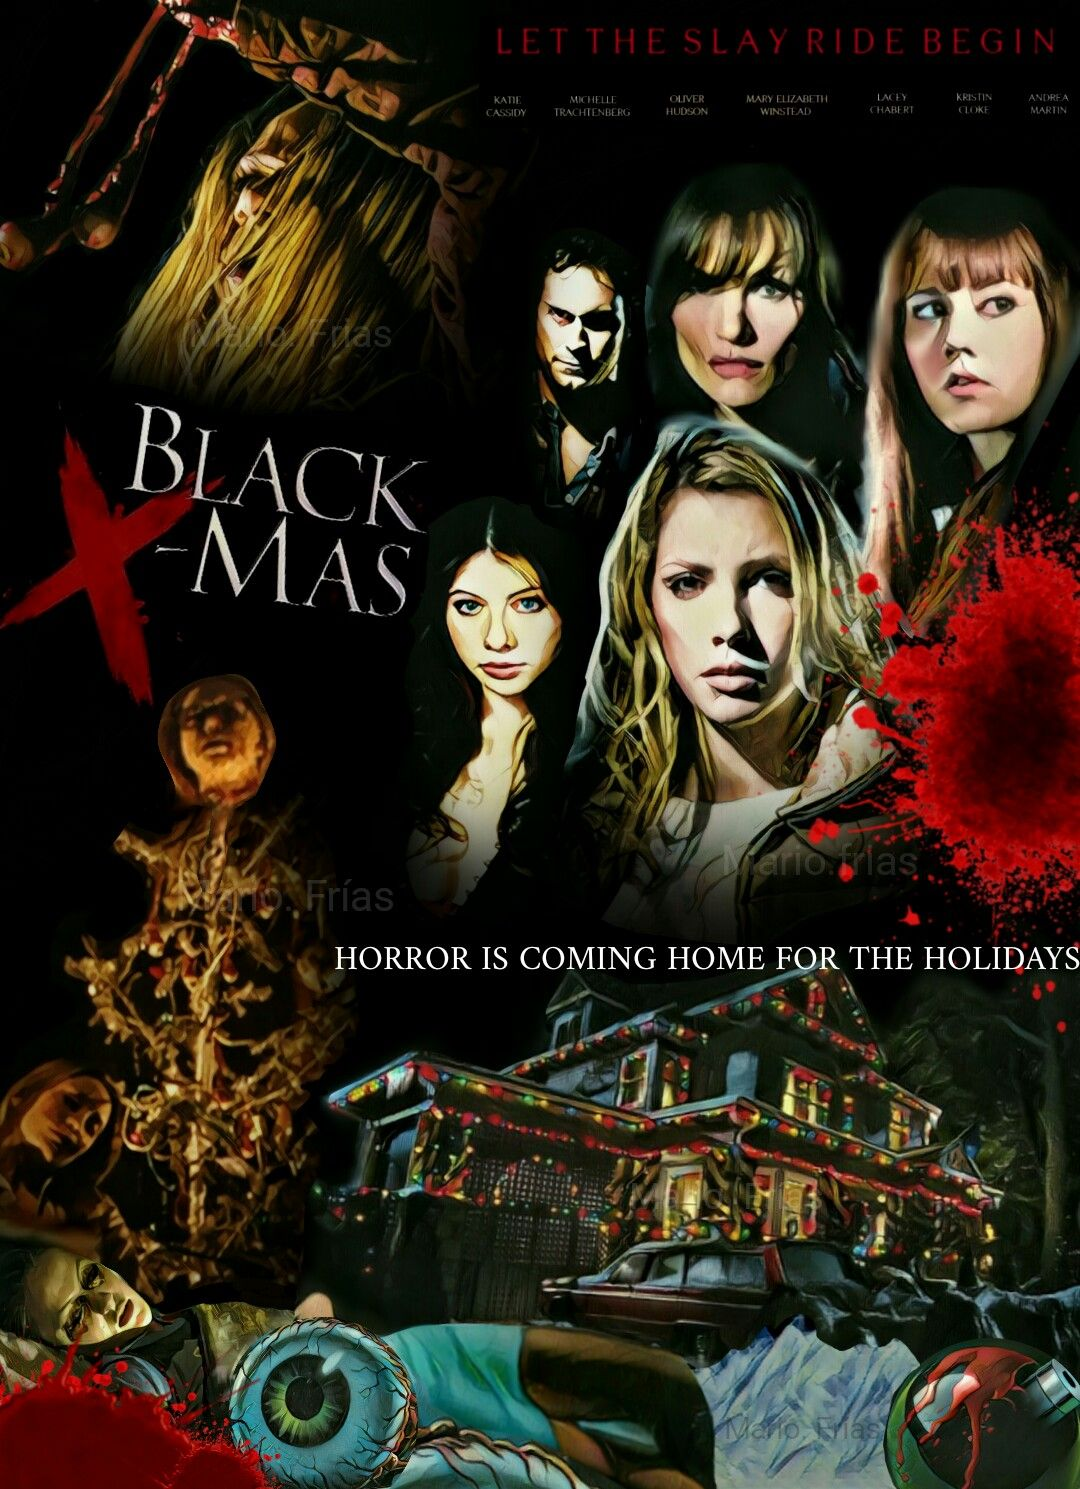 Black Christmas 2006 Horror Movie Slasher Fan Made By